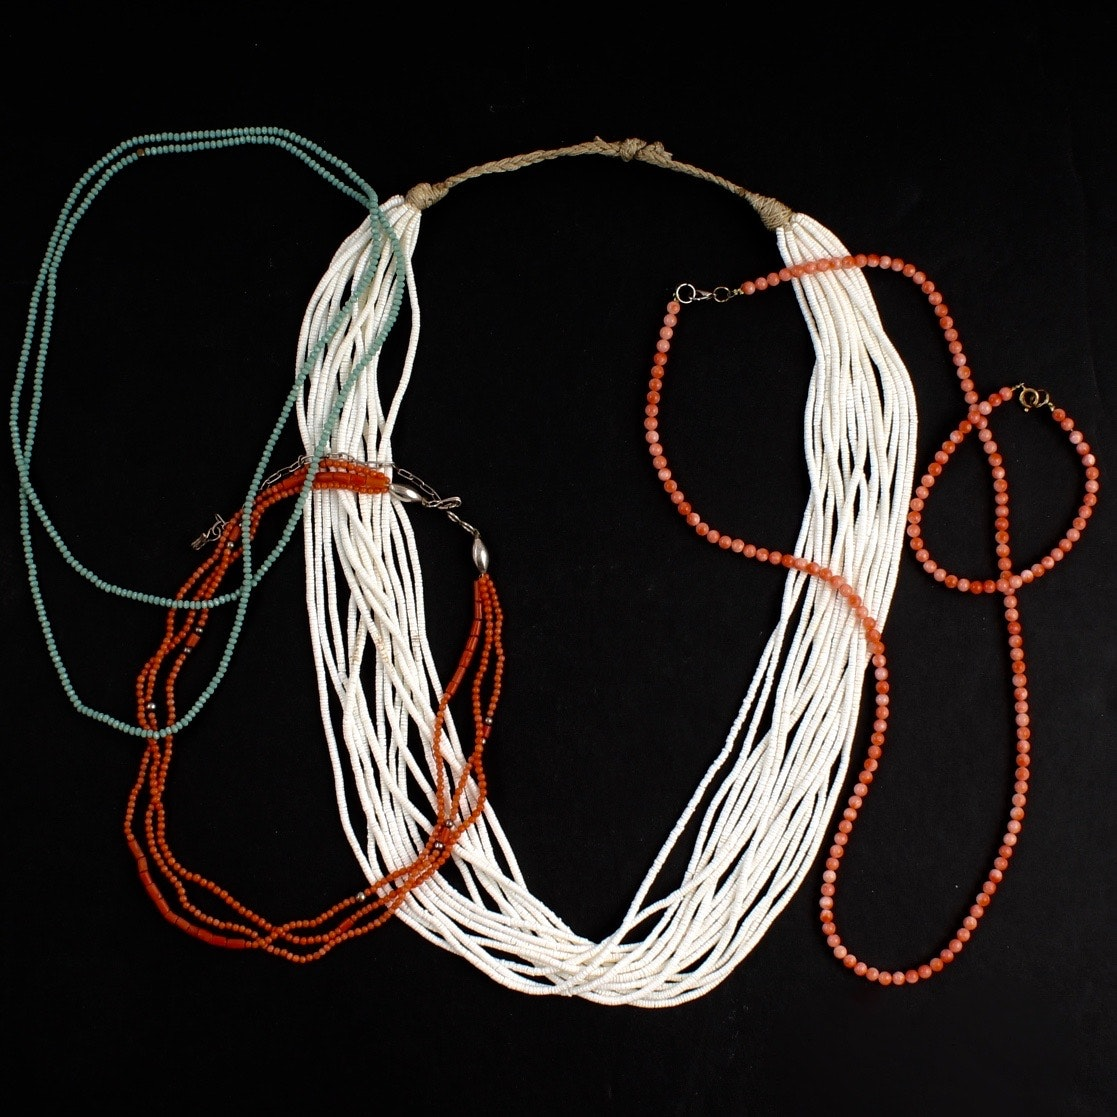 Collection of Beaded Necklaces